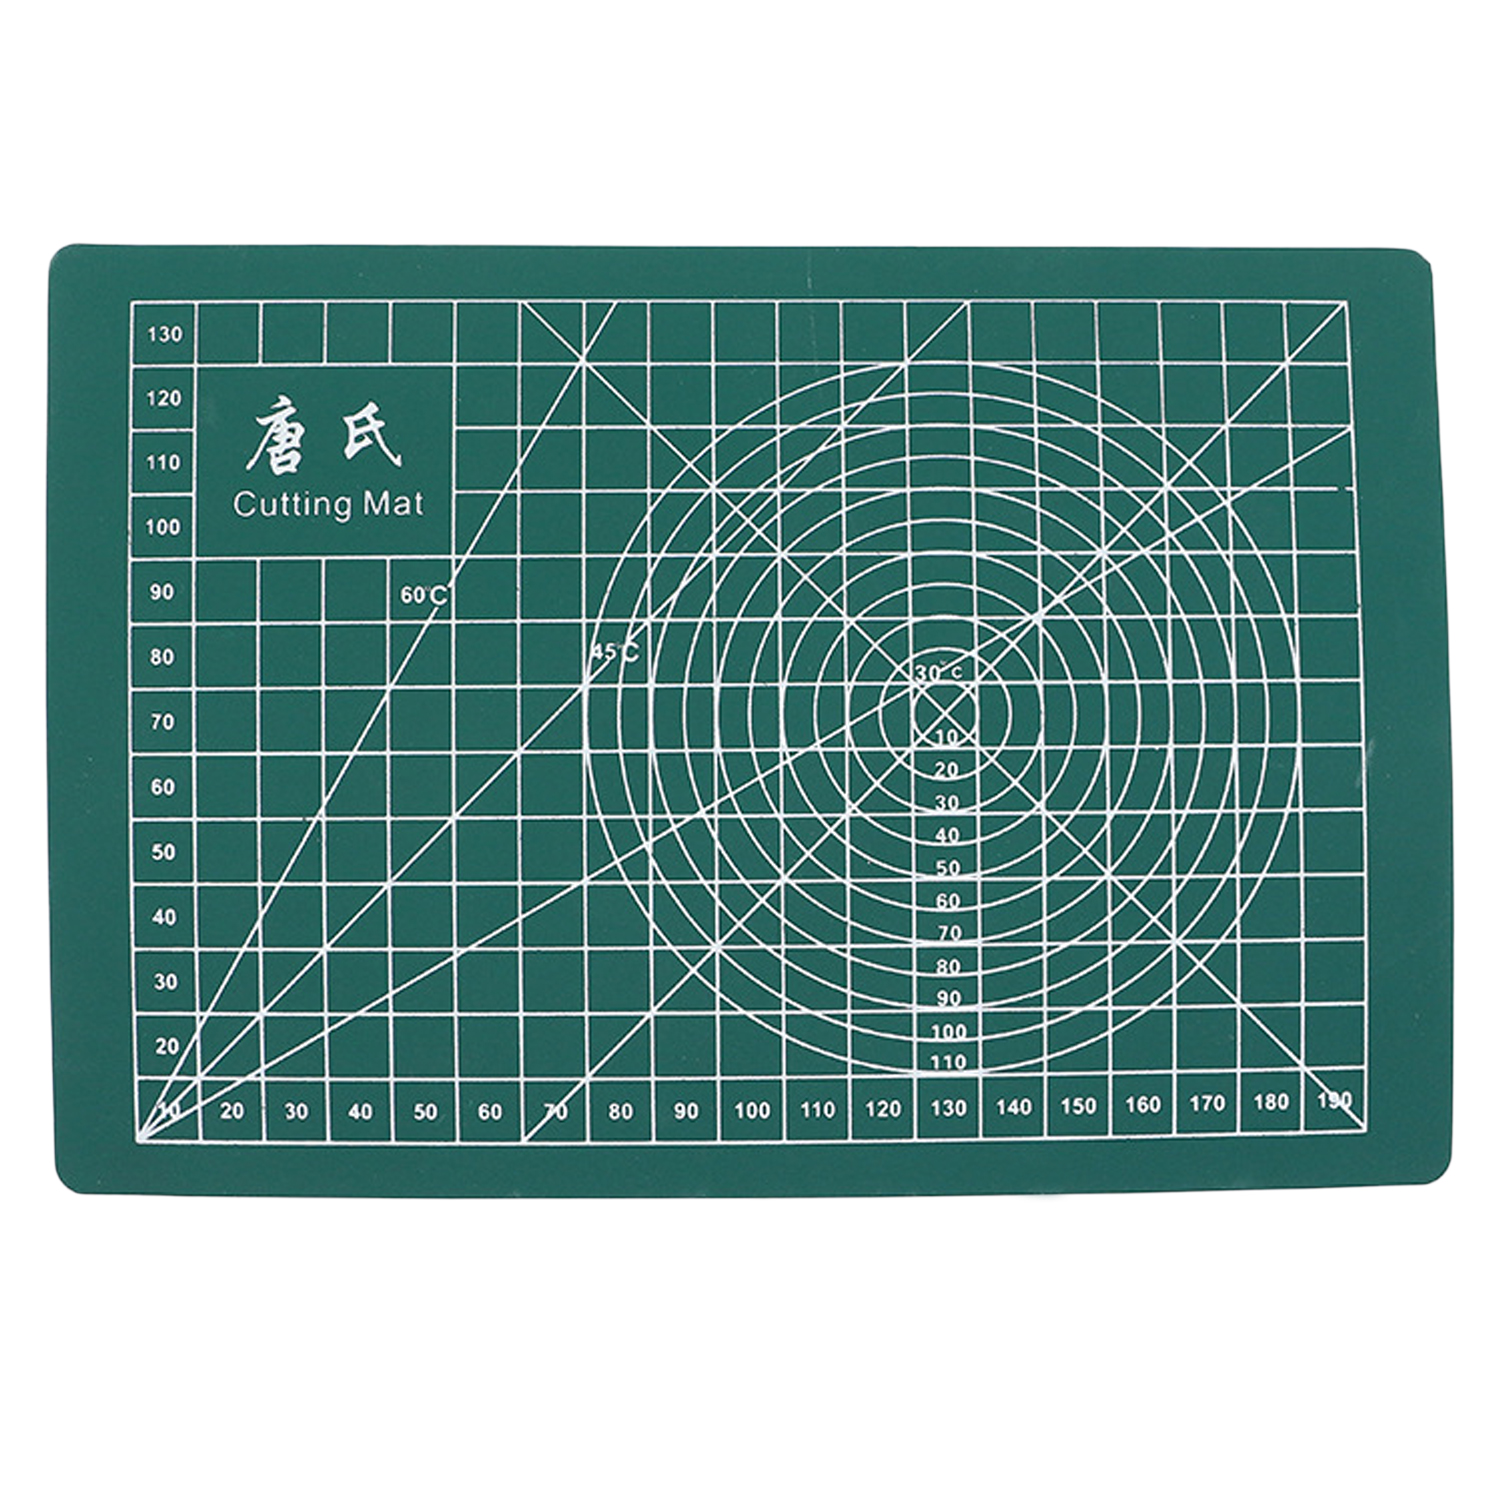 A5 Size Composite PVC Self Healing Cutting Mat Plate Accessory For Sewing Quilting Leather Fabric Paper DIY Crafts